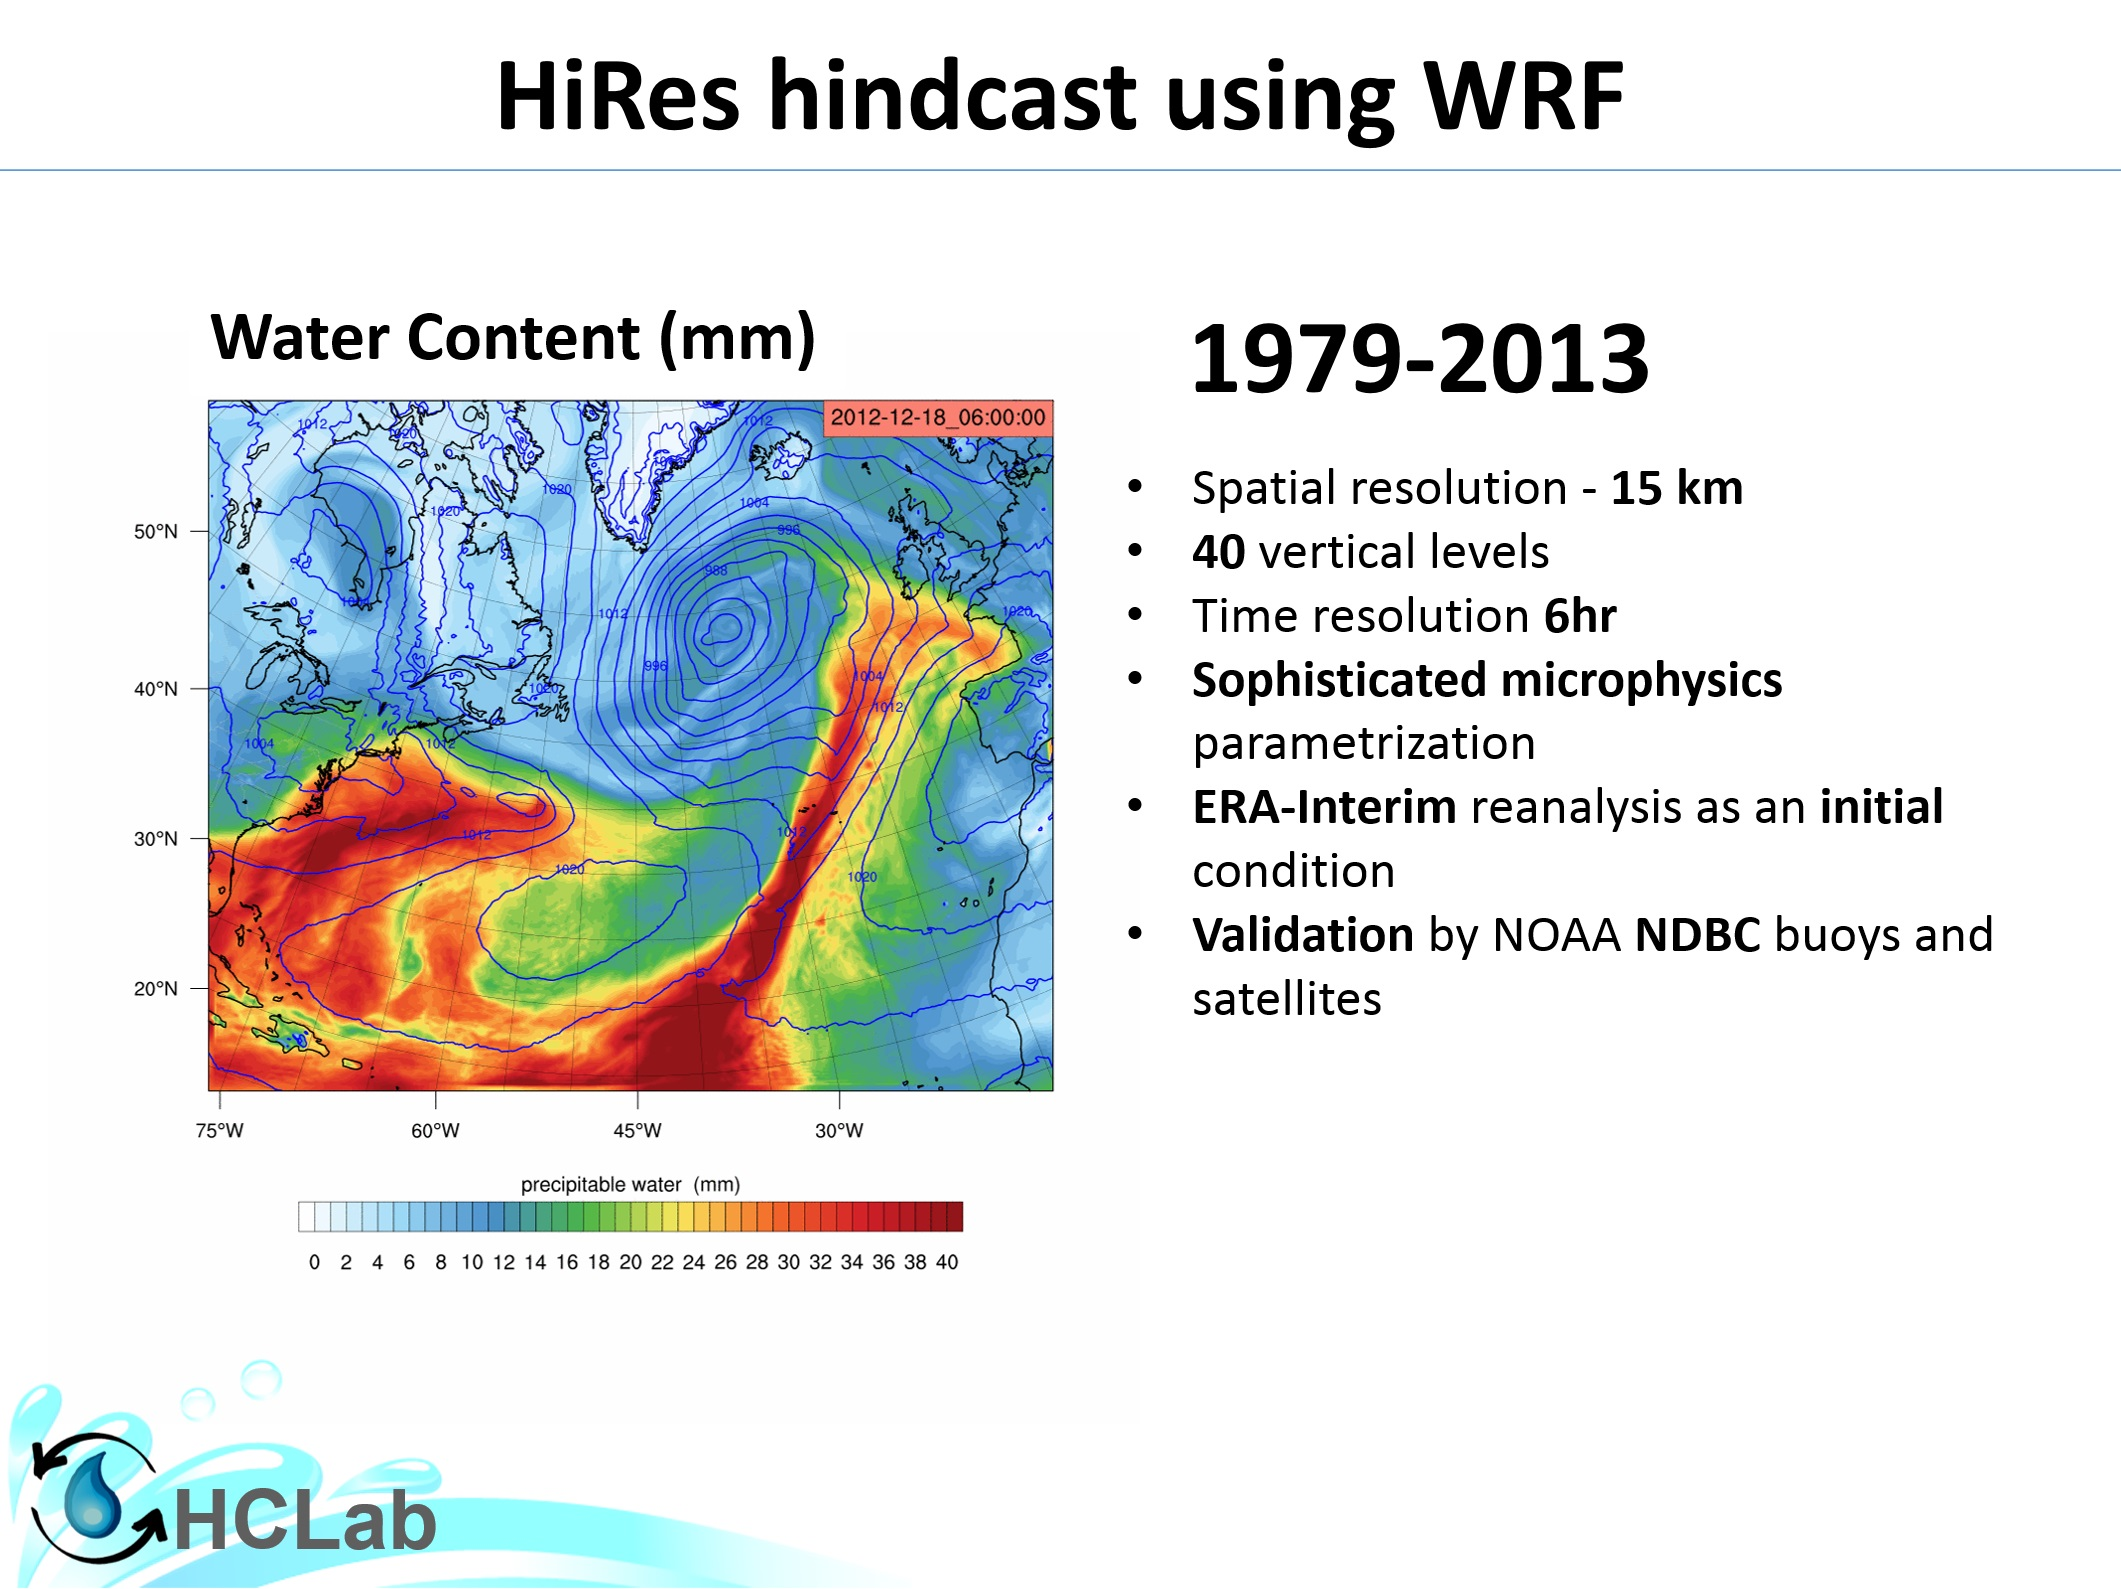 Mesoscale modelling of hydrological extremes